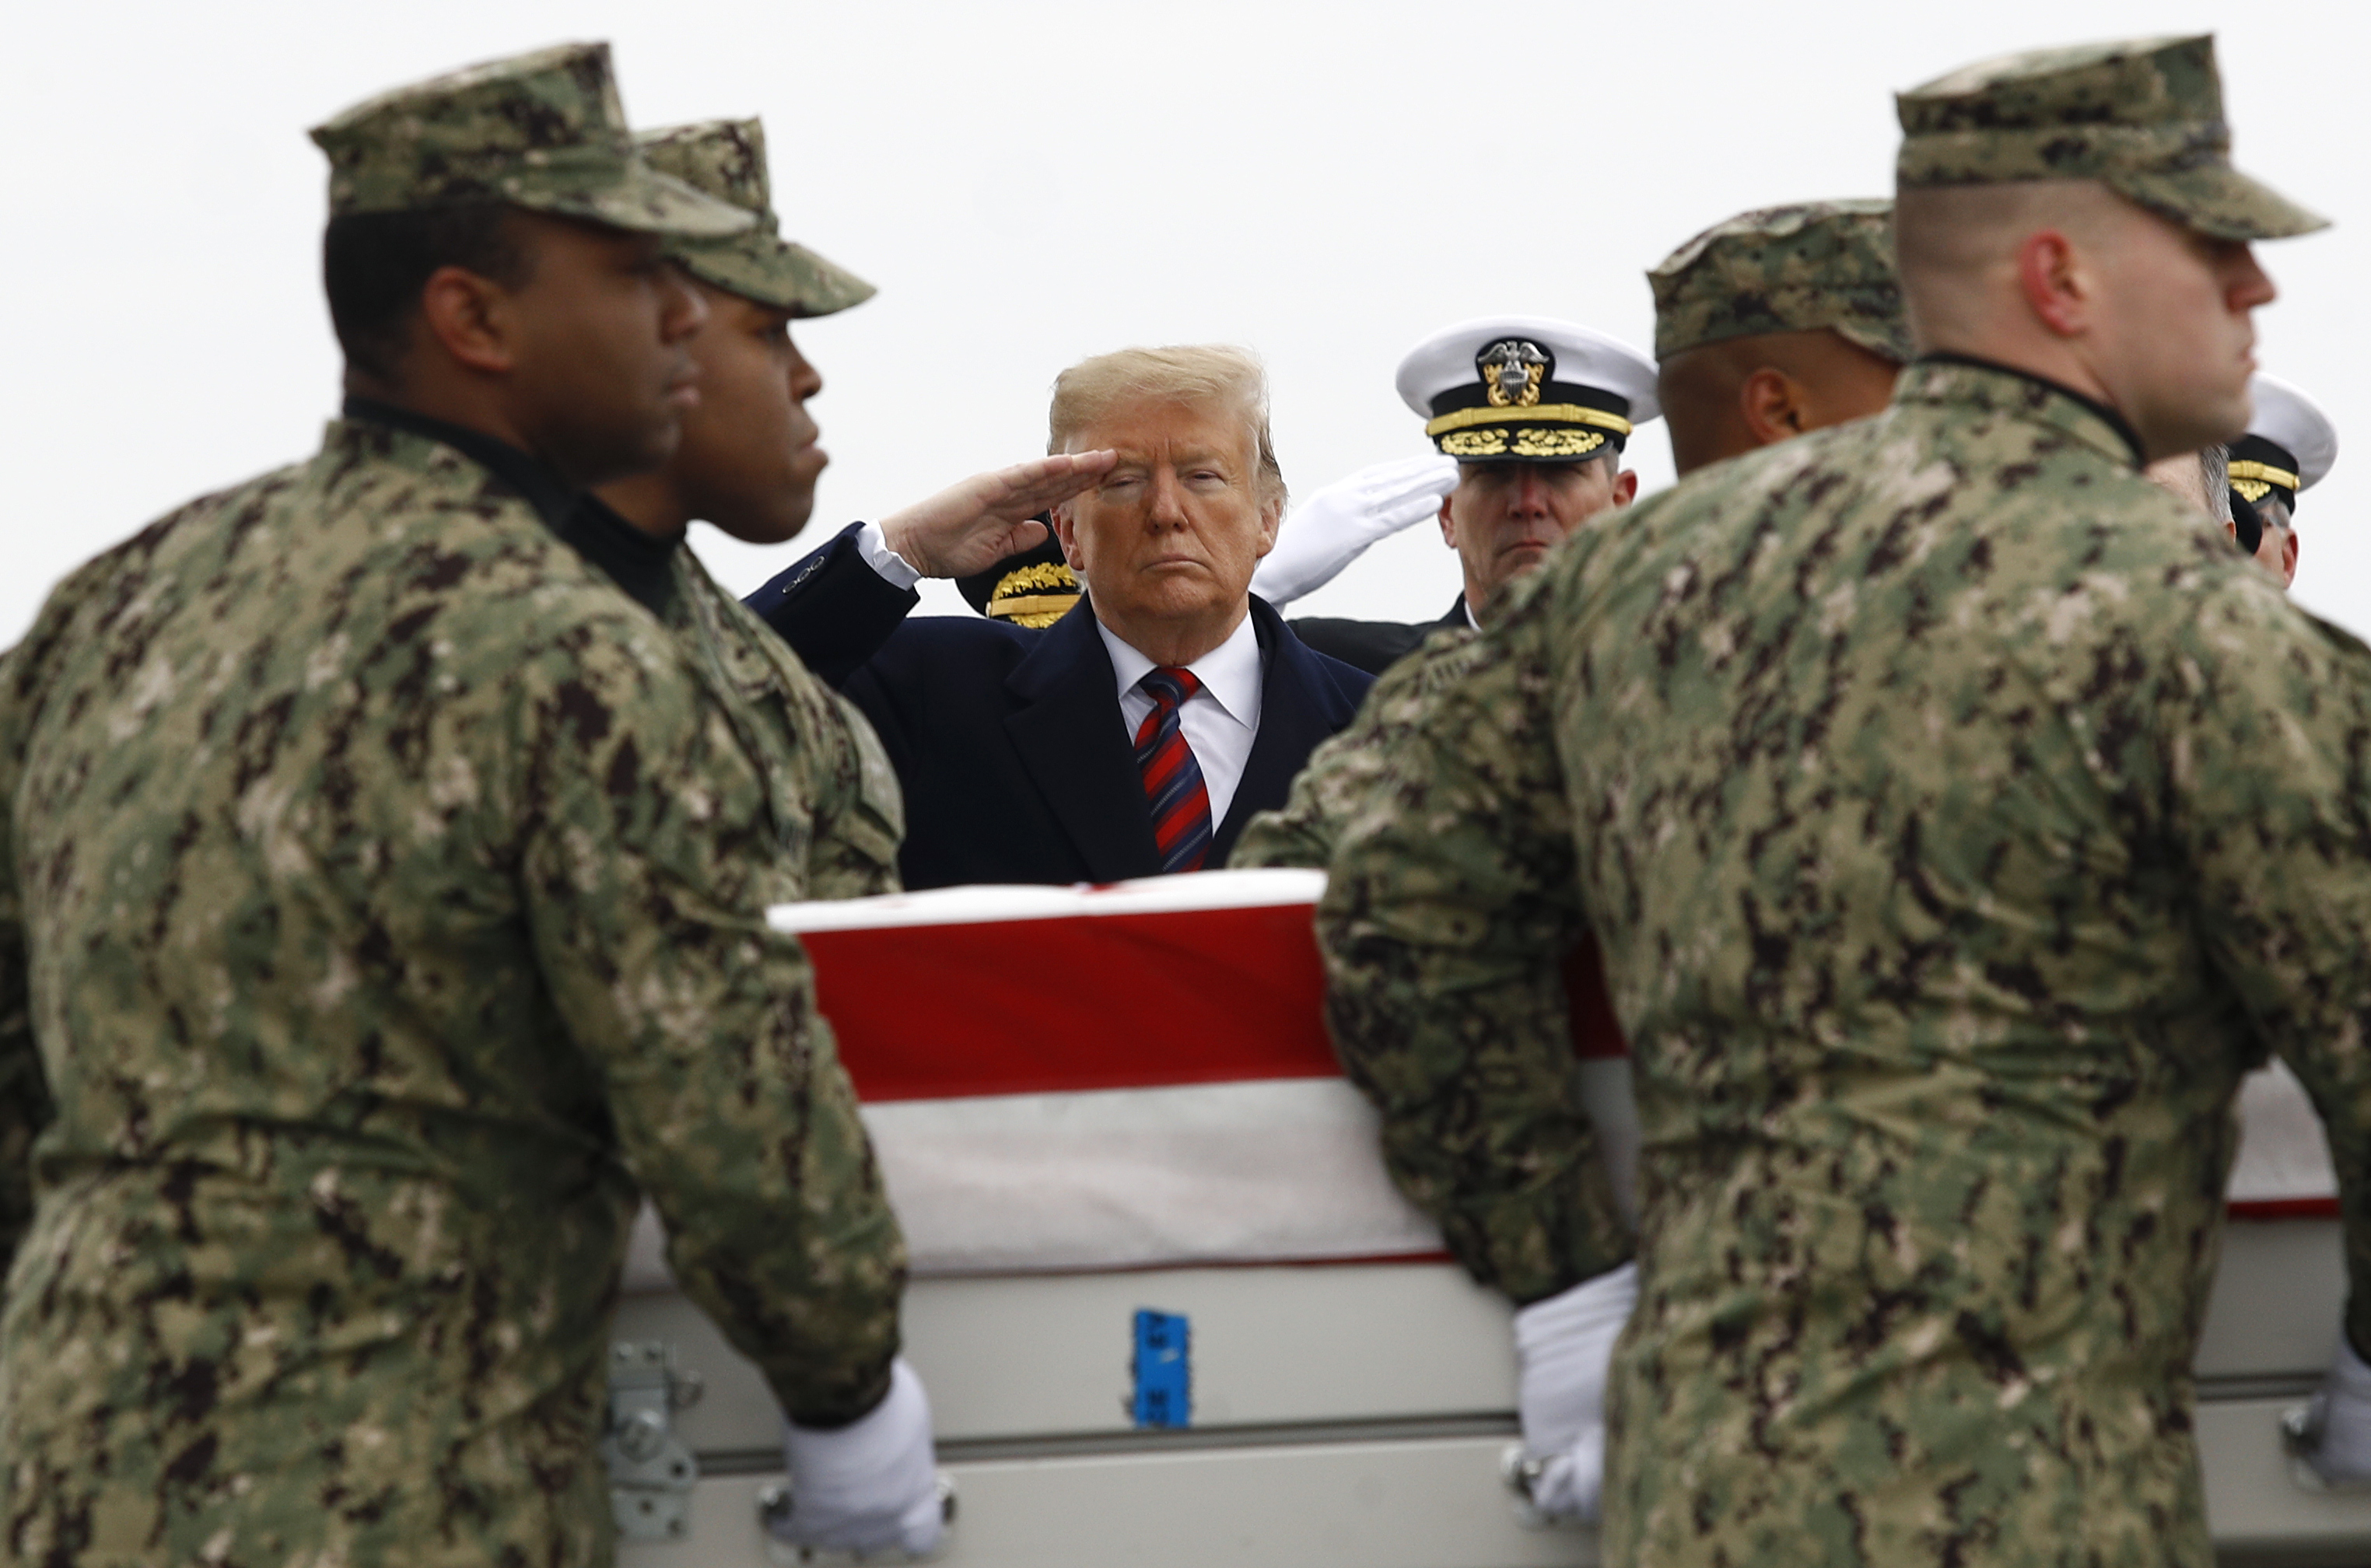 President Trump salutes on Jan. 19, 2019, as sailors move a coffin containing the remains of Scott A. Wirtz, a civilian and former Navy SEAL who was killed in a suicide bomb attack in Manbij, Syria. (Patrick Semansky/AP)